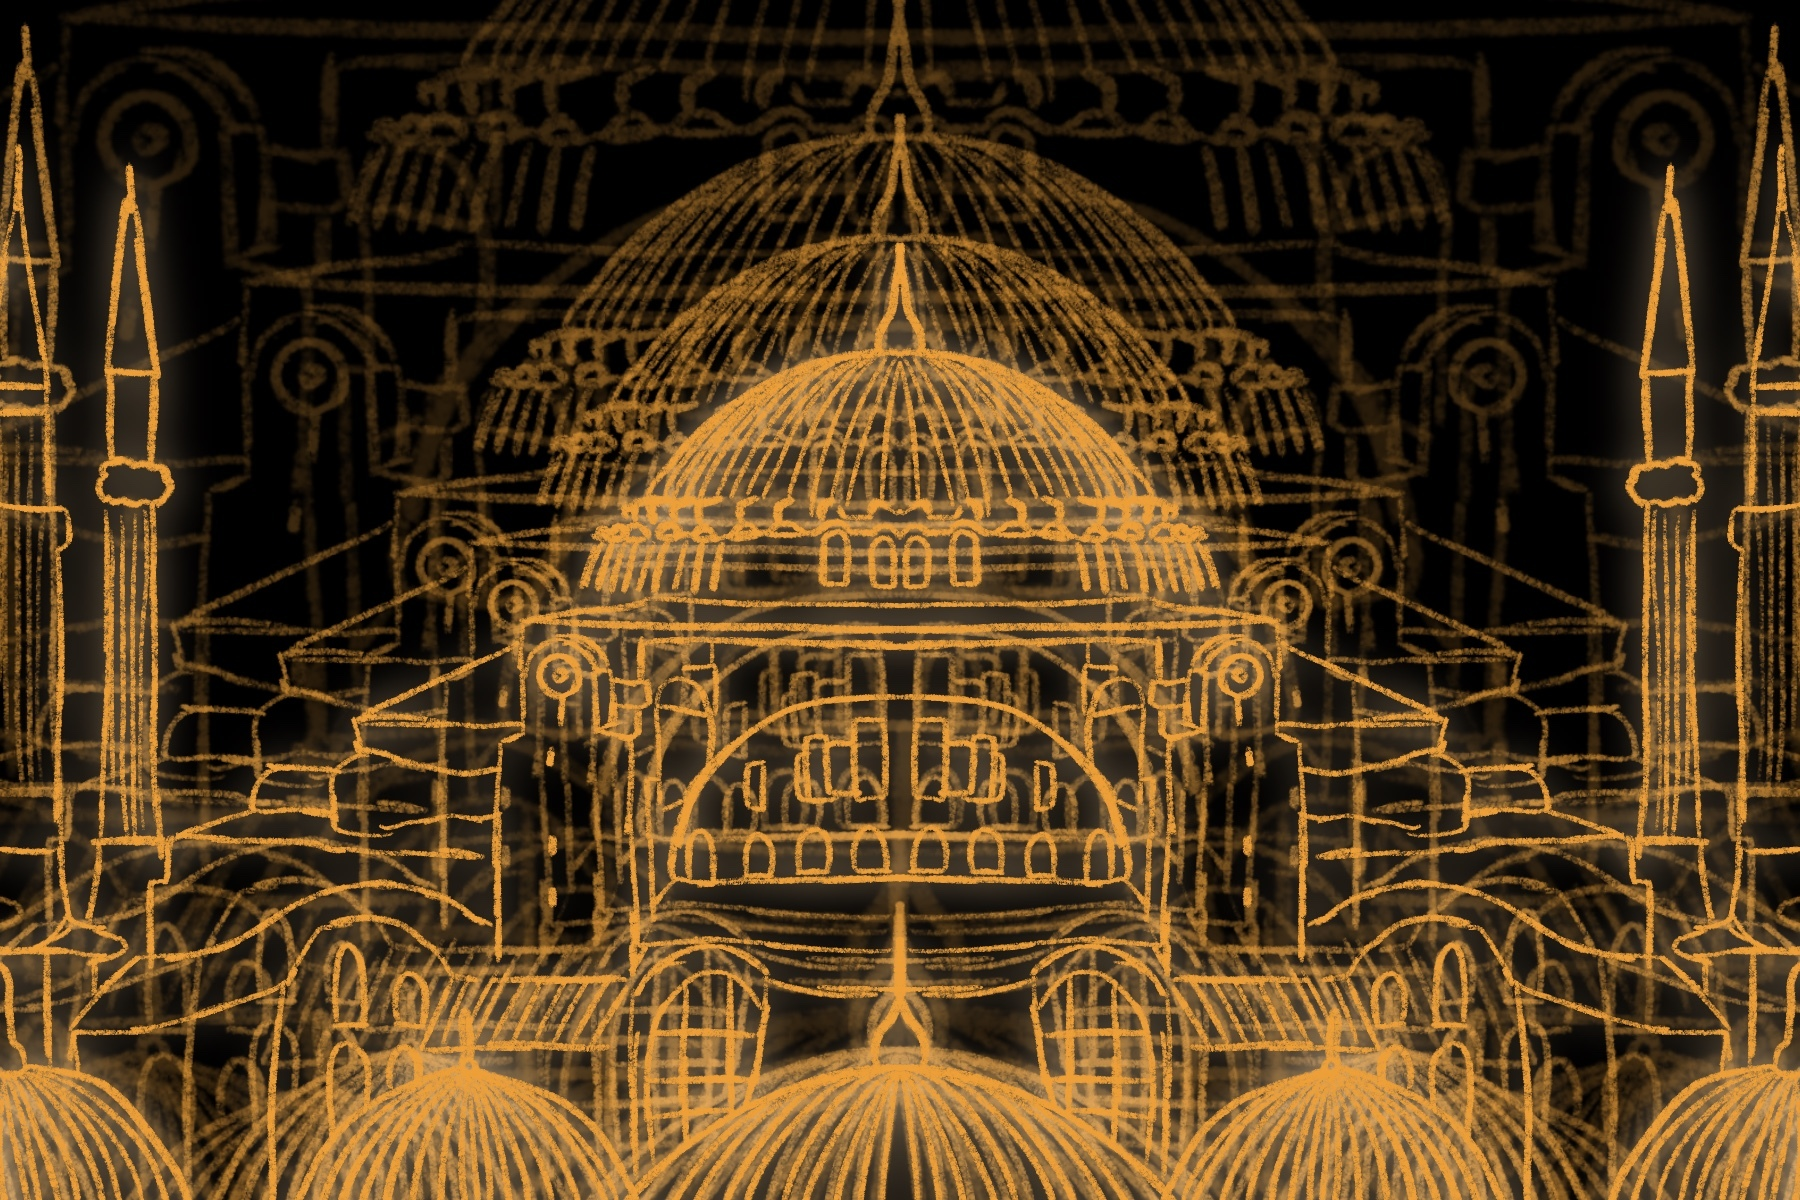 Illustration of the Hagia Sophia